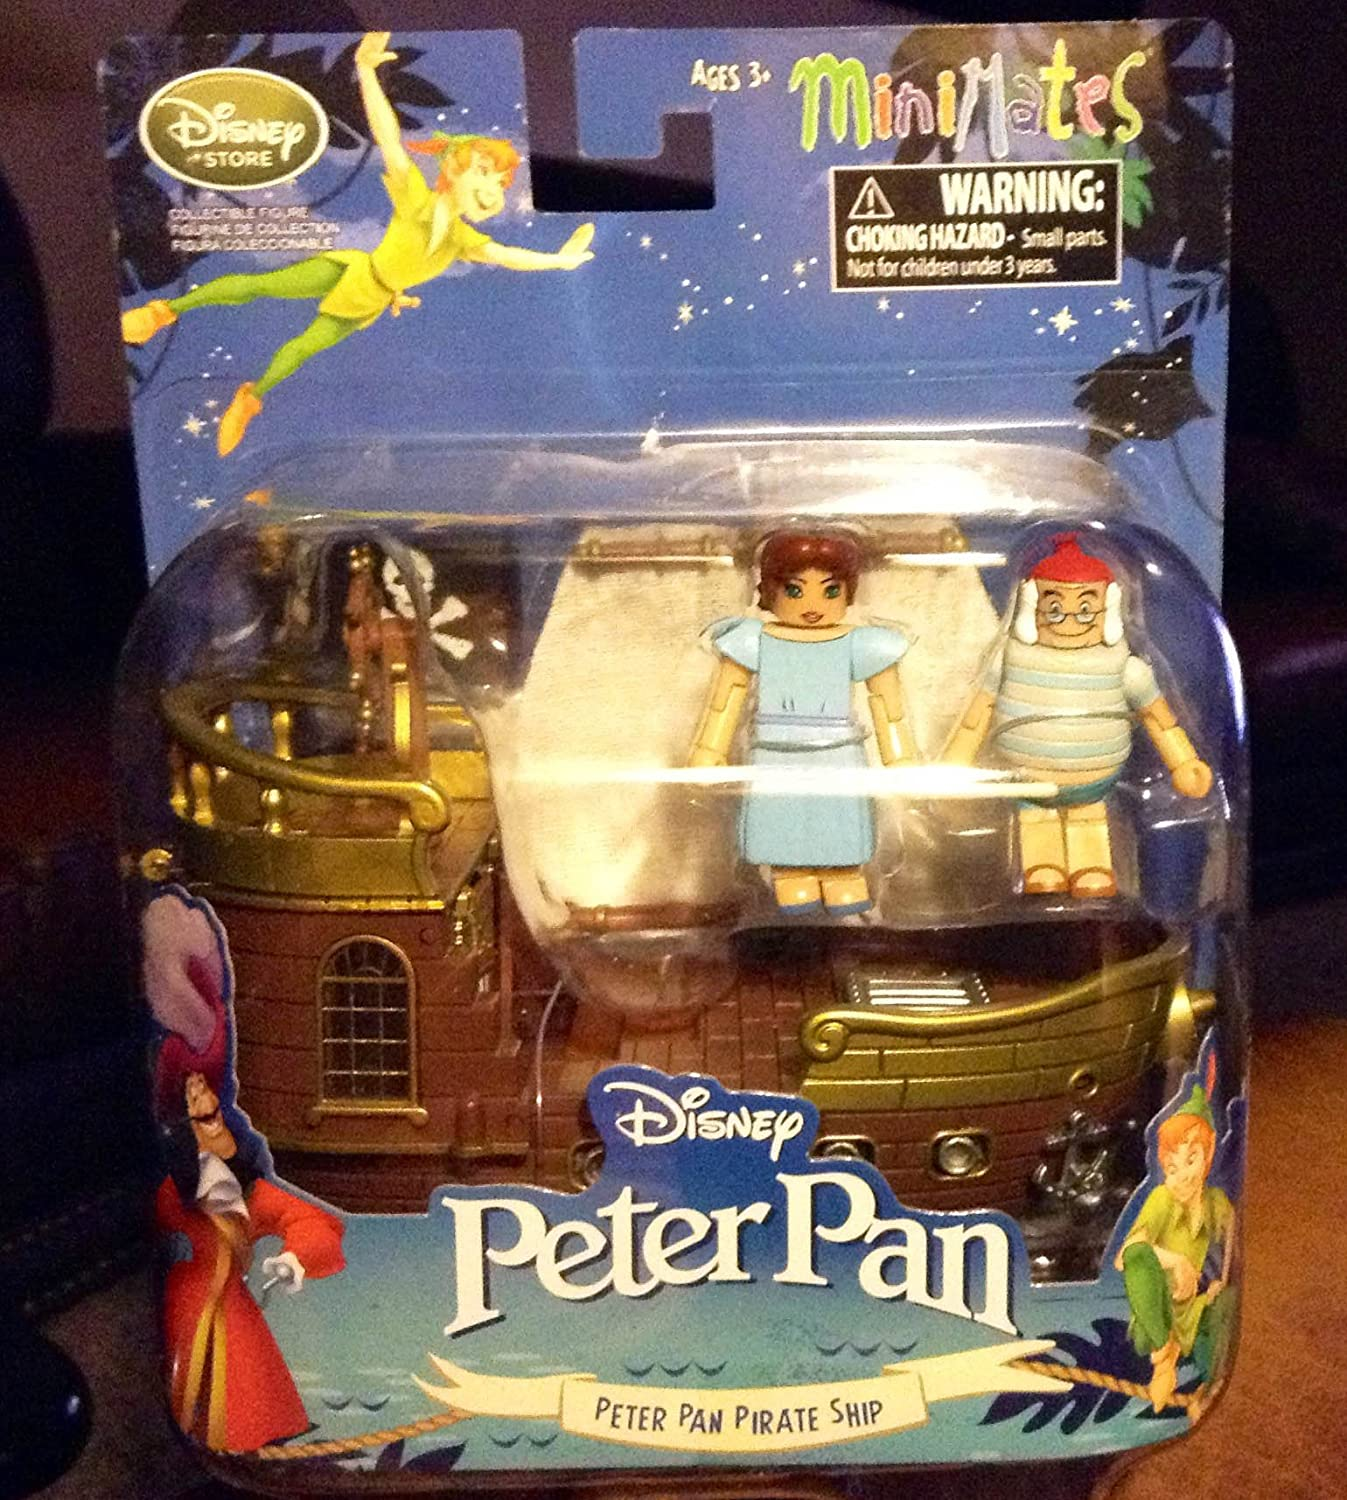 Disney MiniMates Peter Pan Jolly Rodger Pirate Ship Playset Figurine Wendy, Mr Smee